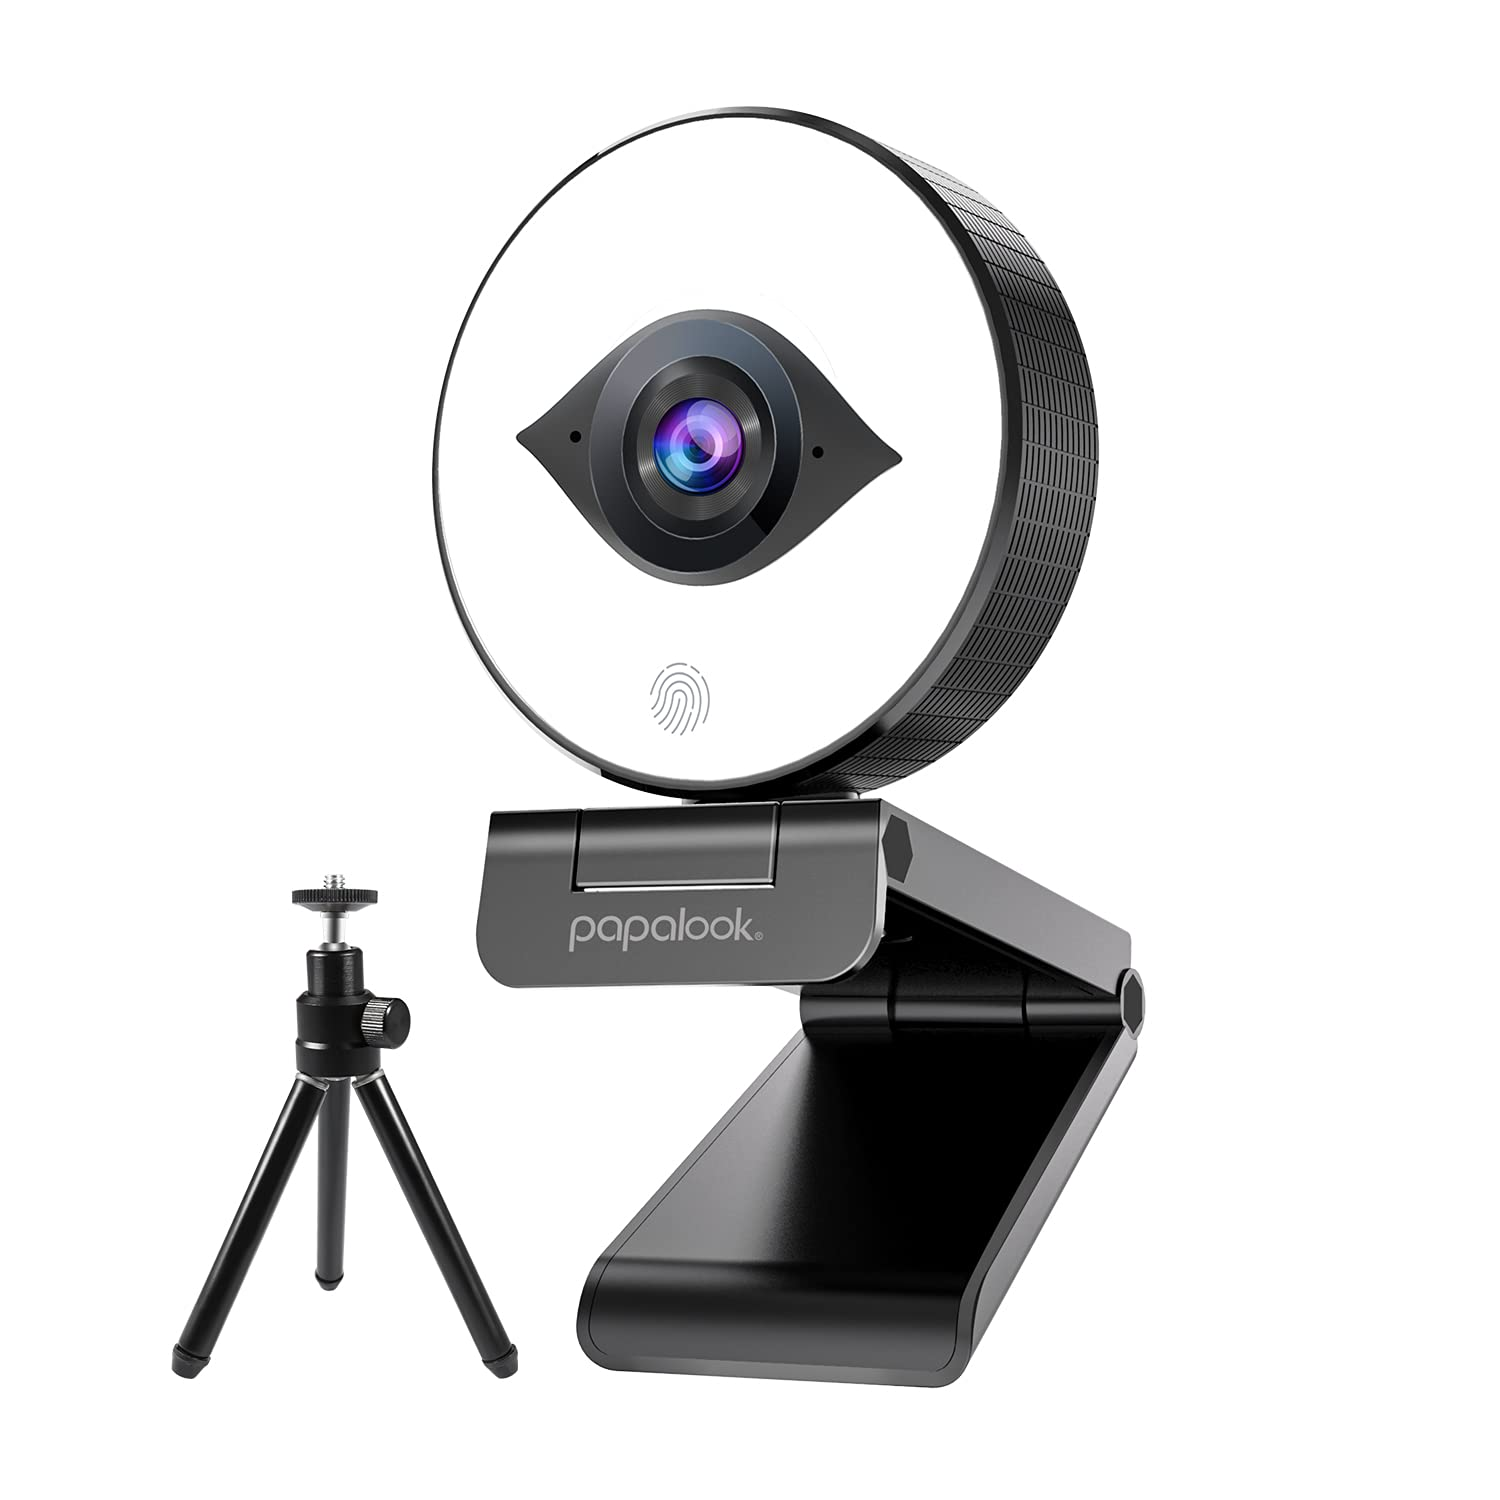 Papalook PA552 Pro 1080P/60FPS Autofocus Webcam with Tripod